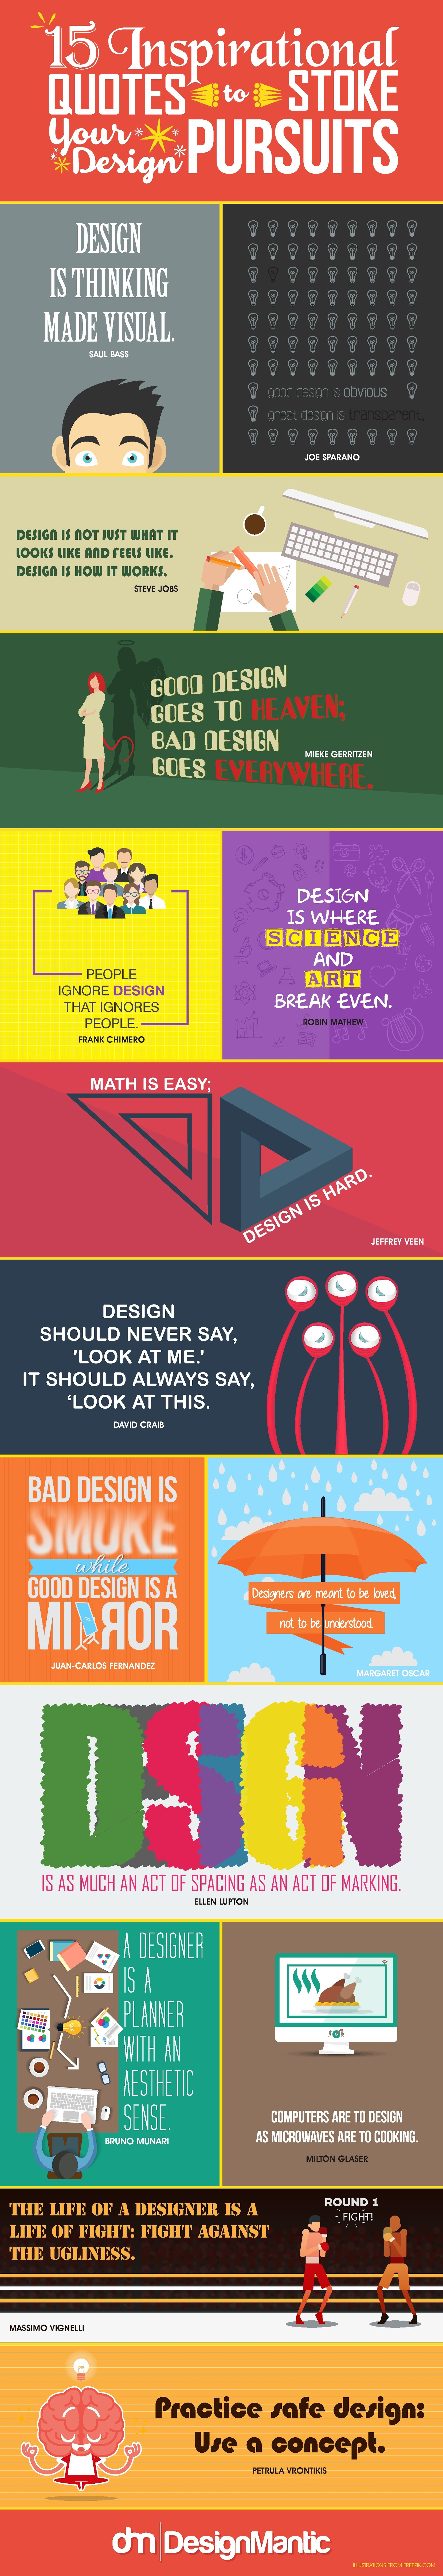 15 Inspirational Quotes To Stoke Your Design Pursuits - #infographic